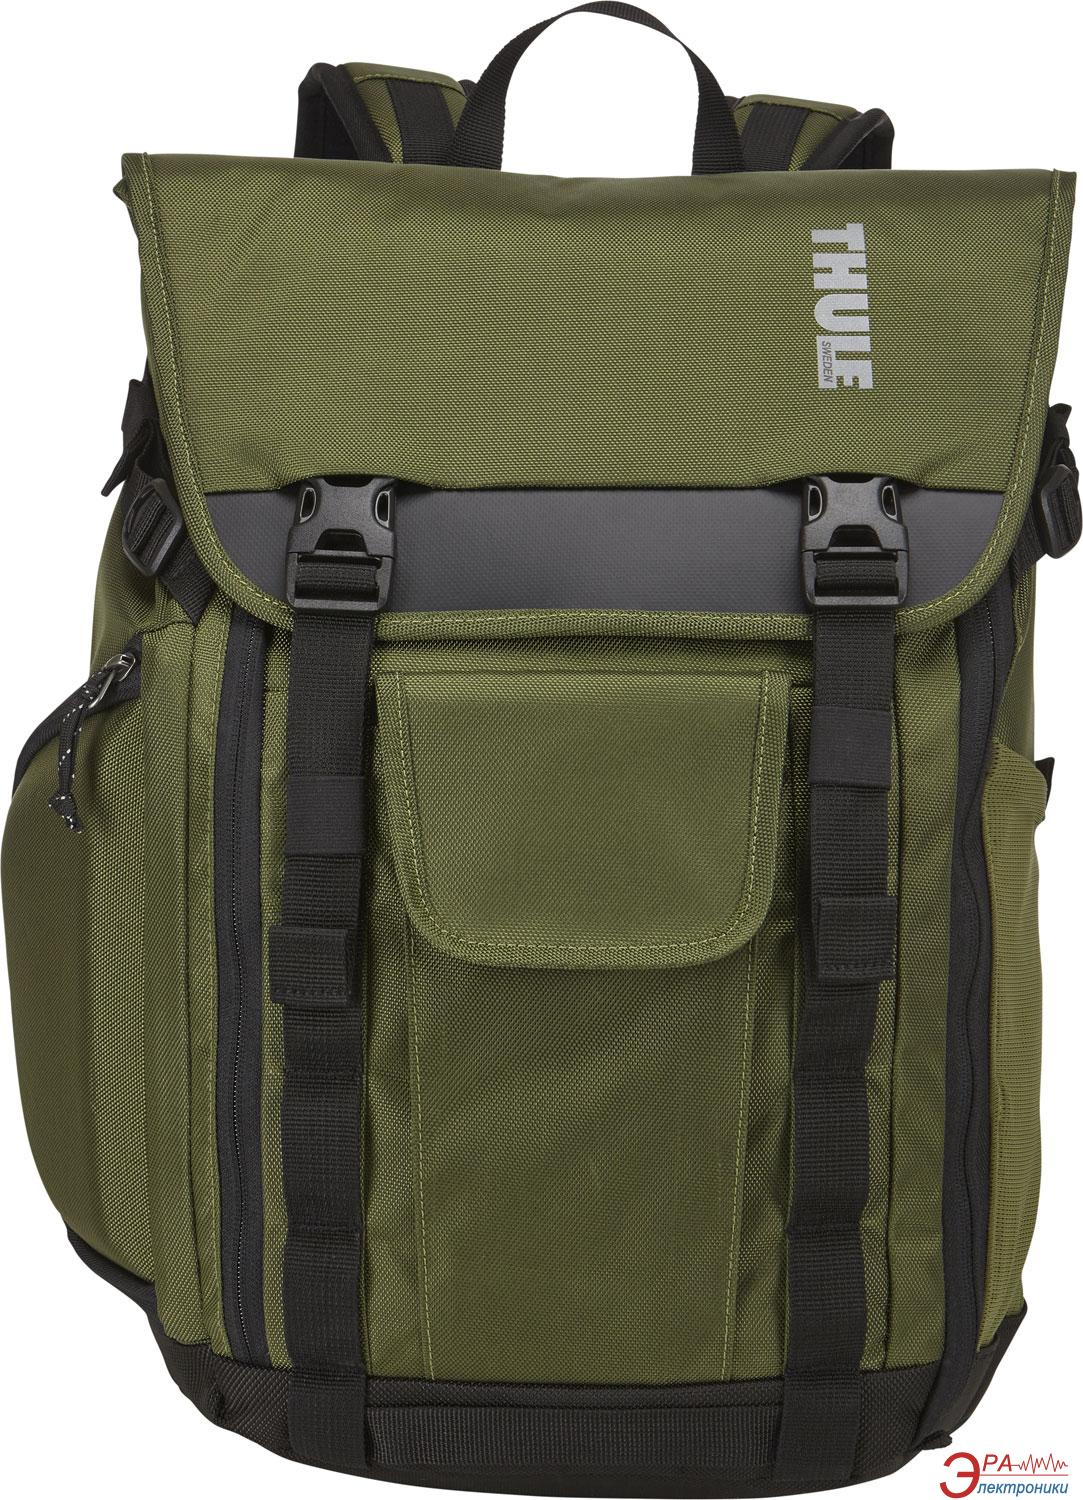 Рюкзак для ноутбука Thule Subterra Daypack for 15 MacBook Pro Drab (TSDP115GN)